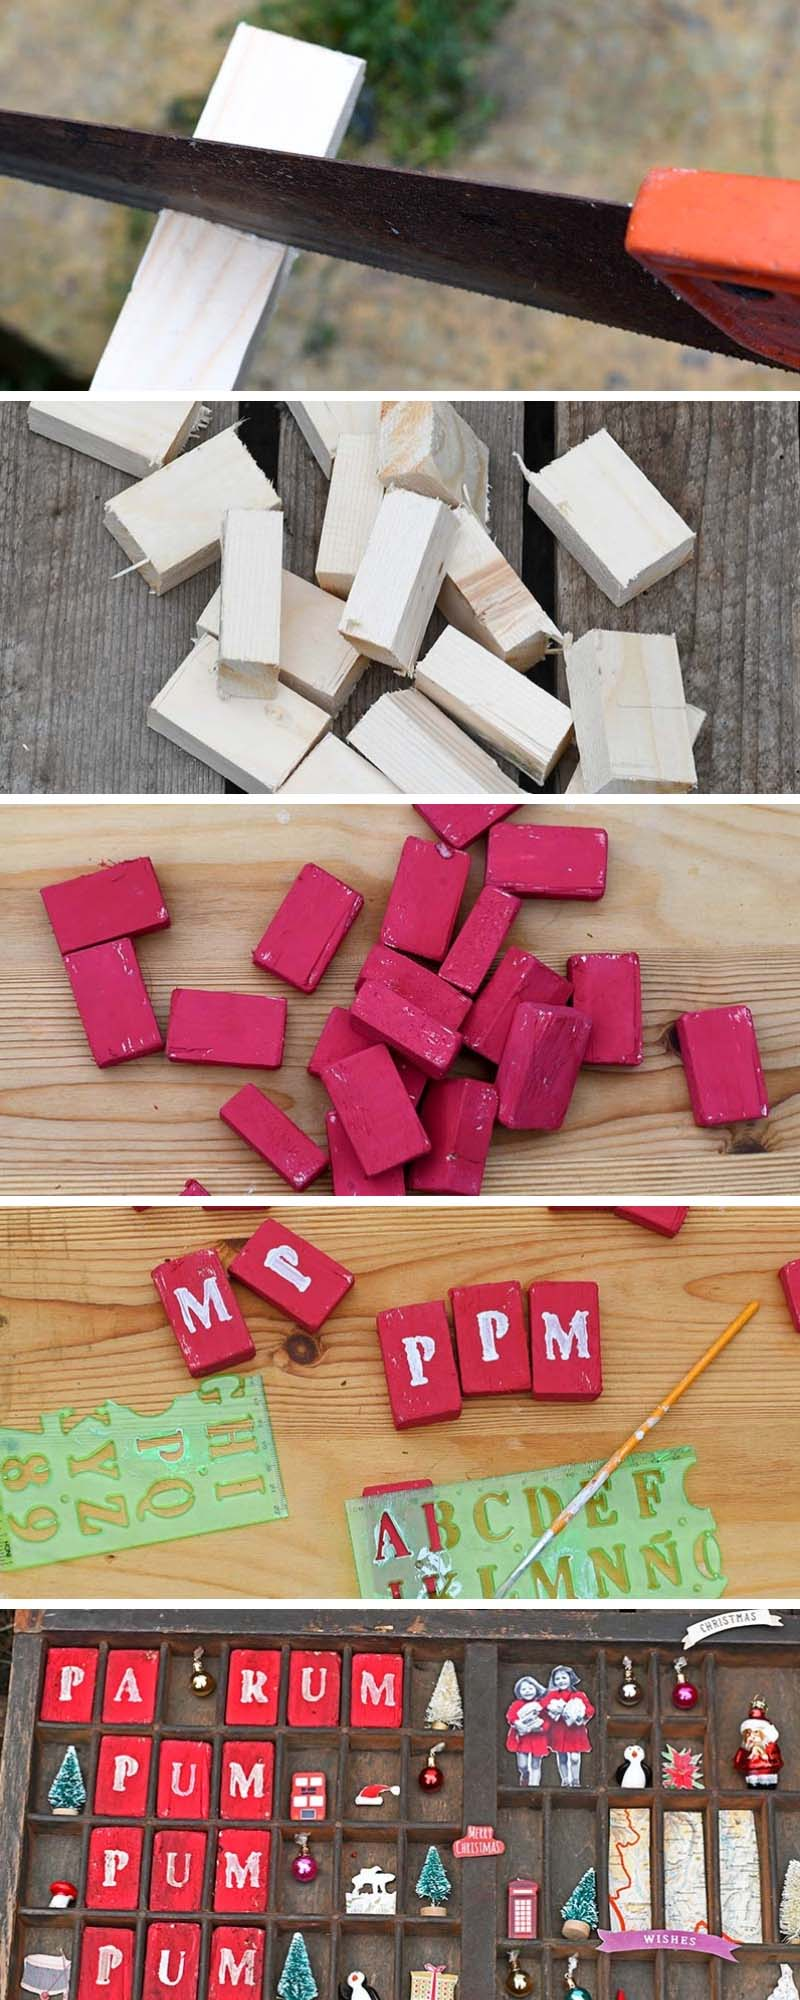 Making letters for printer tray